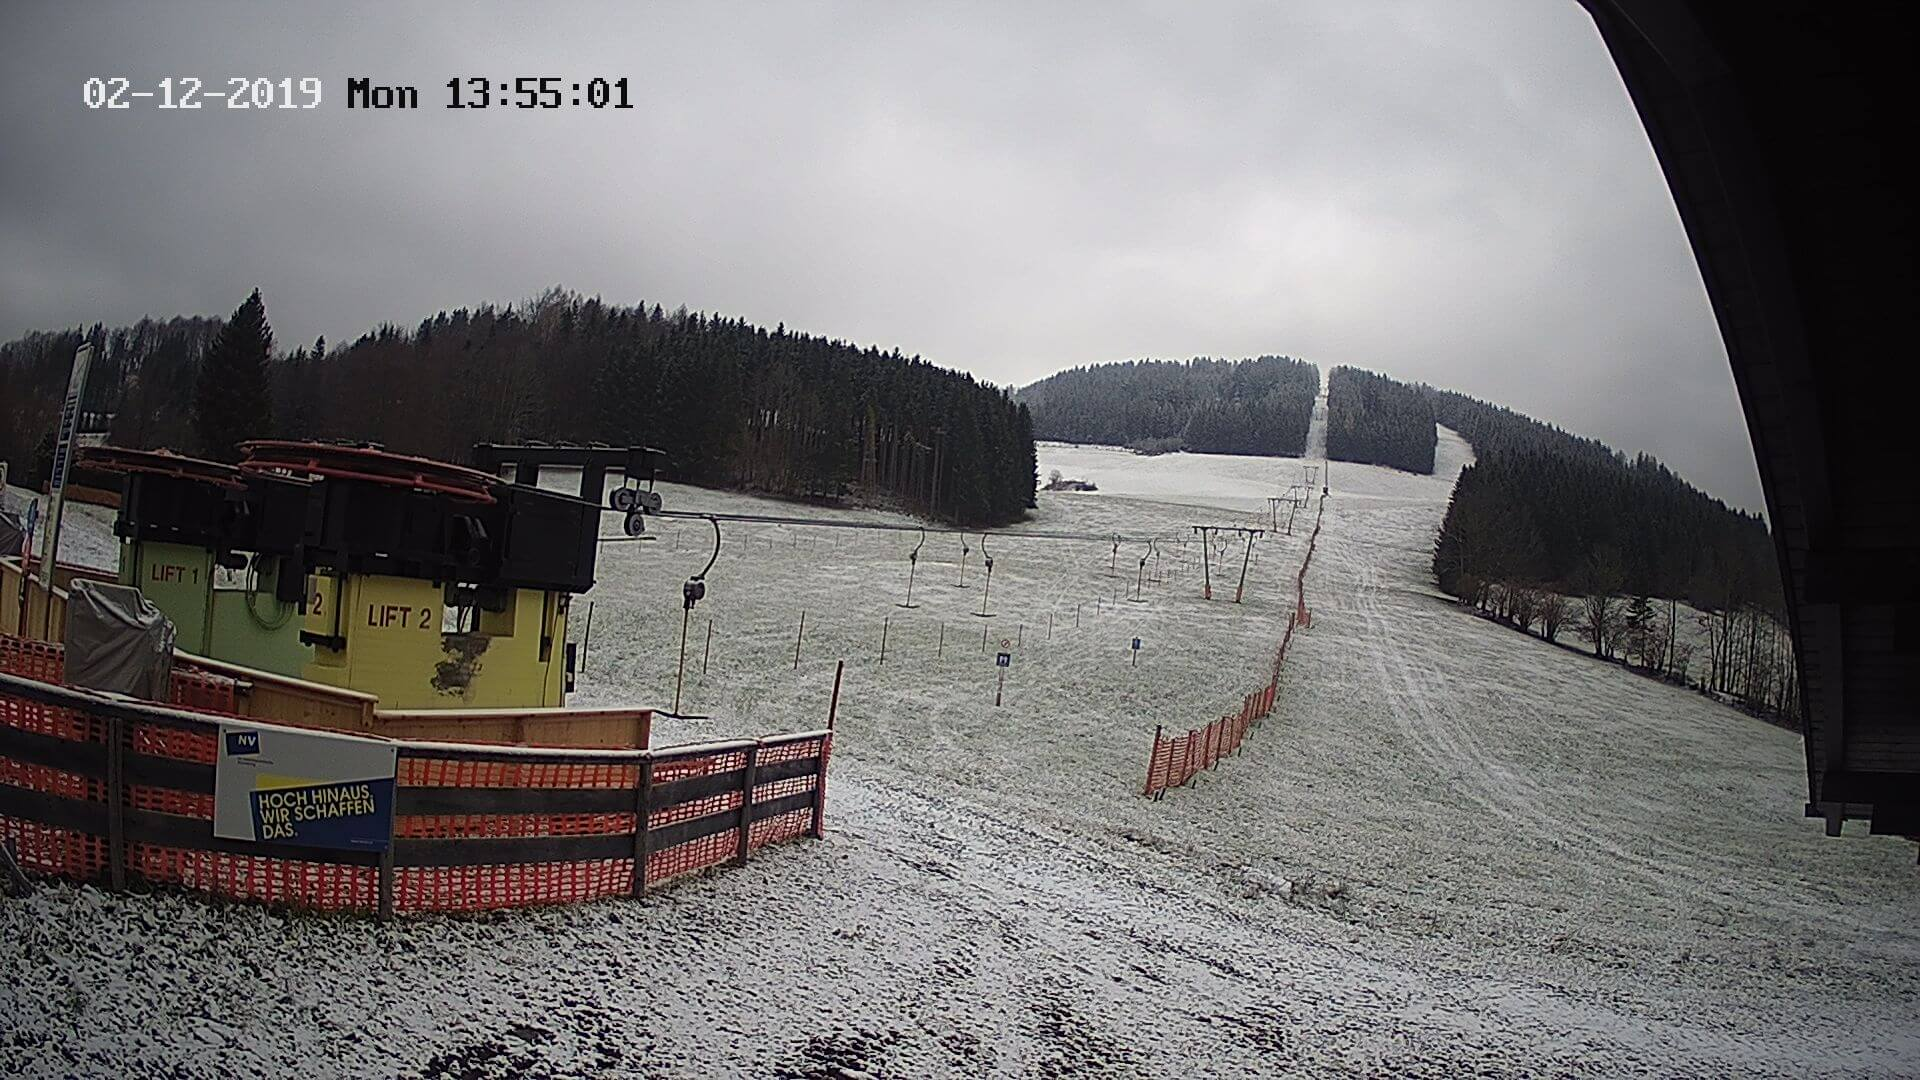 Wenig Neuschnee in Lunz, Quelle: https://www.lunz.at/m1/m1/webcam.jpg